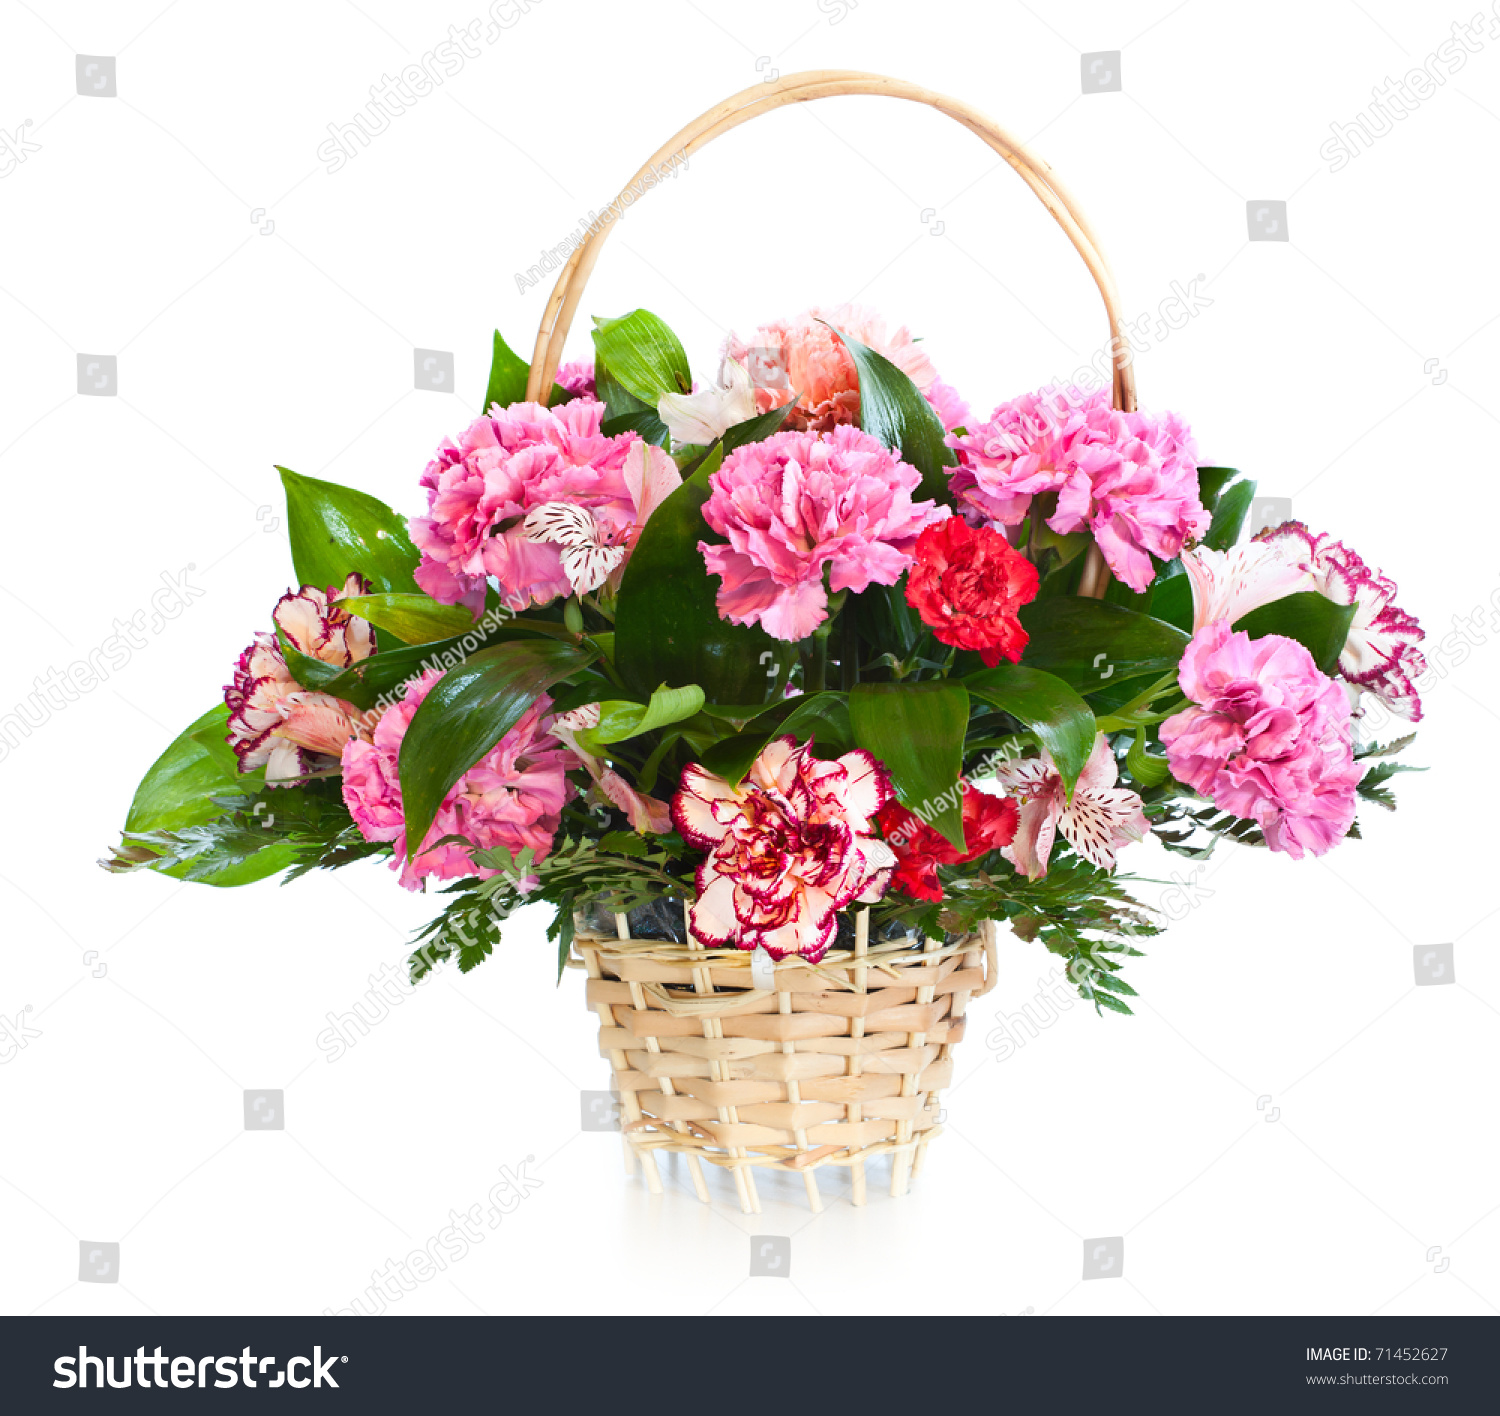 Bright Flower Bouquet Basket Isolated Over Stock Photo (100% Legal ...